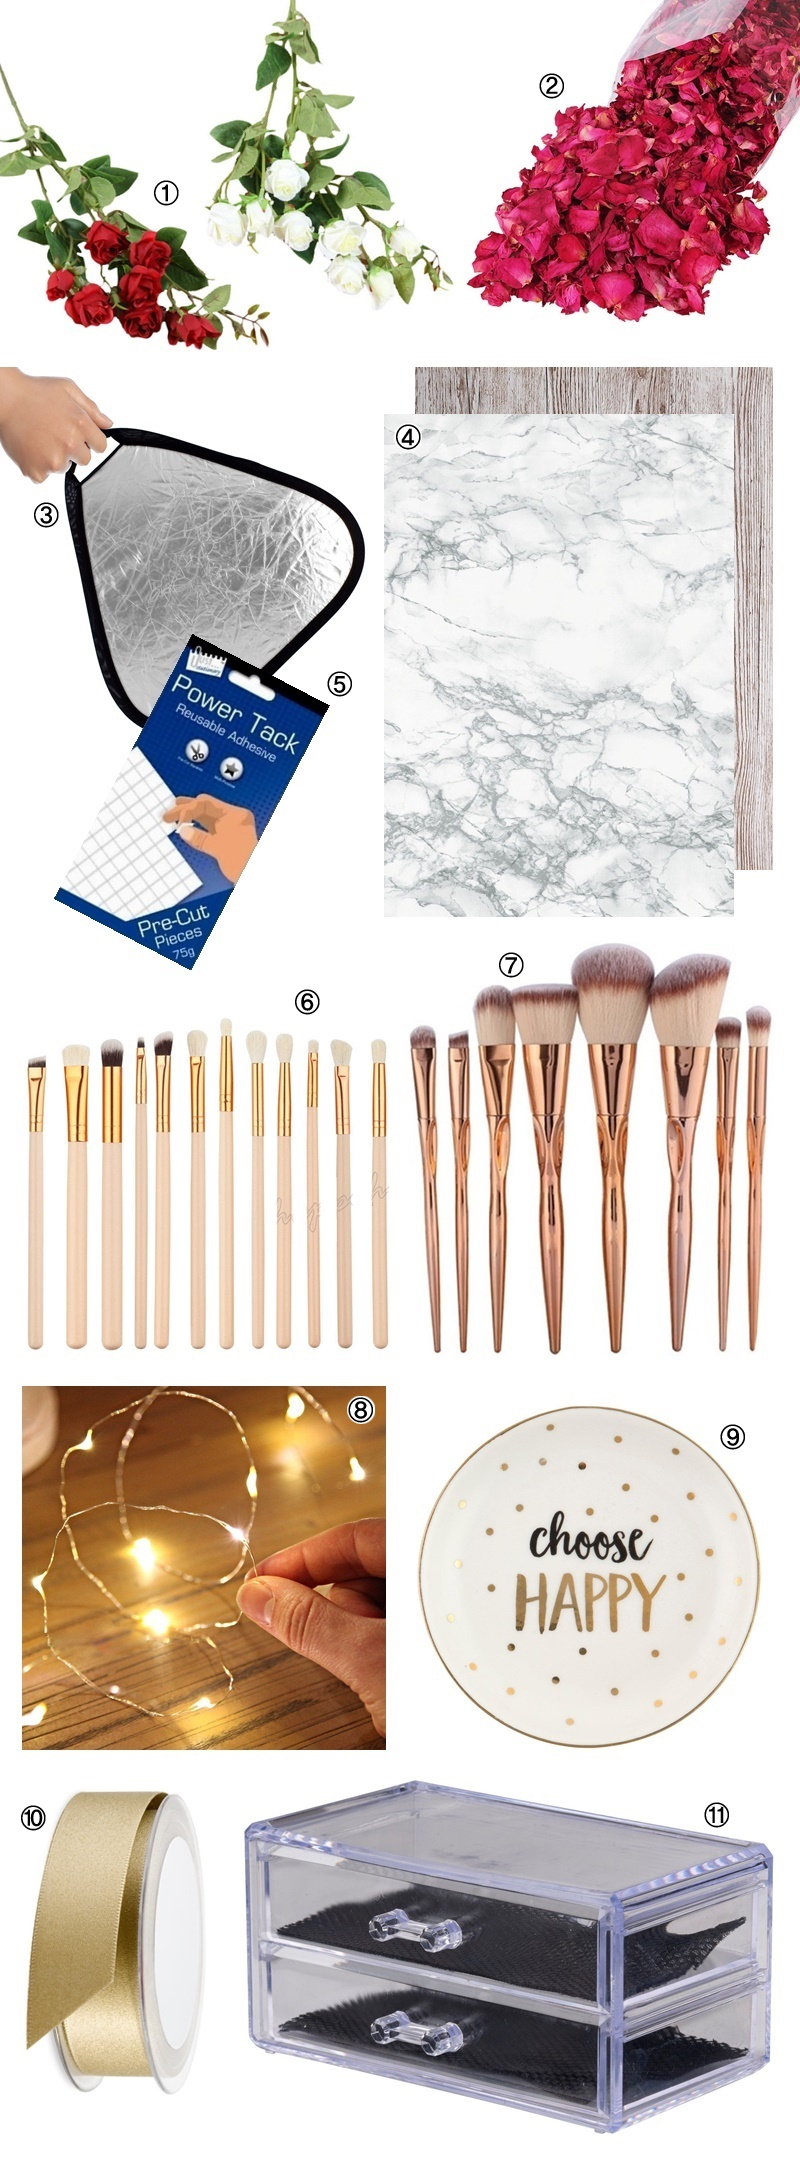 ebay-finds-flat-lay-photography